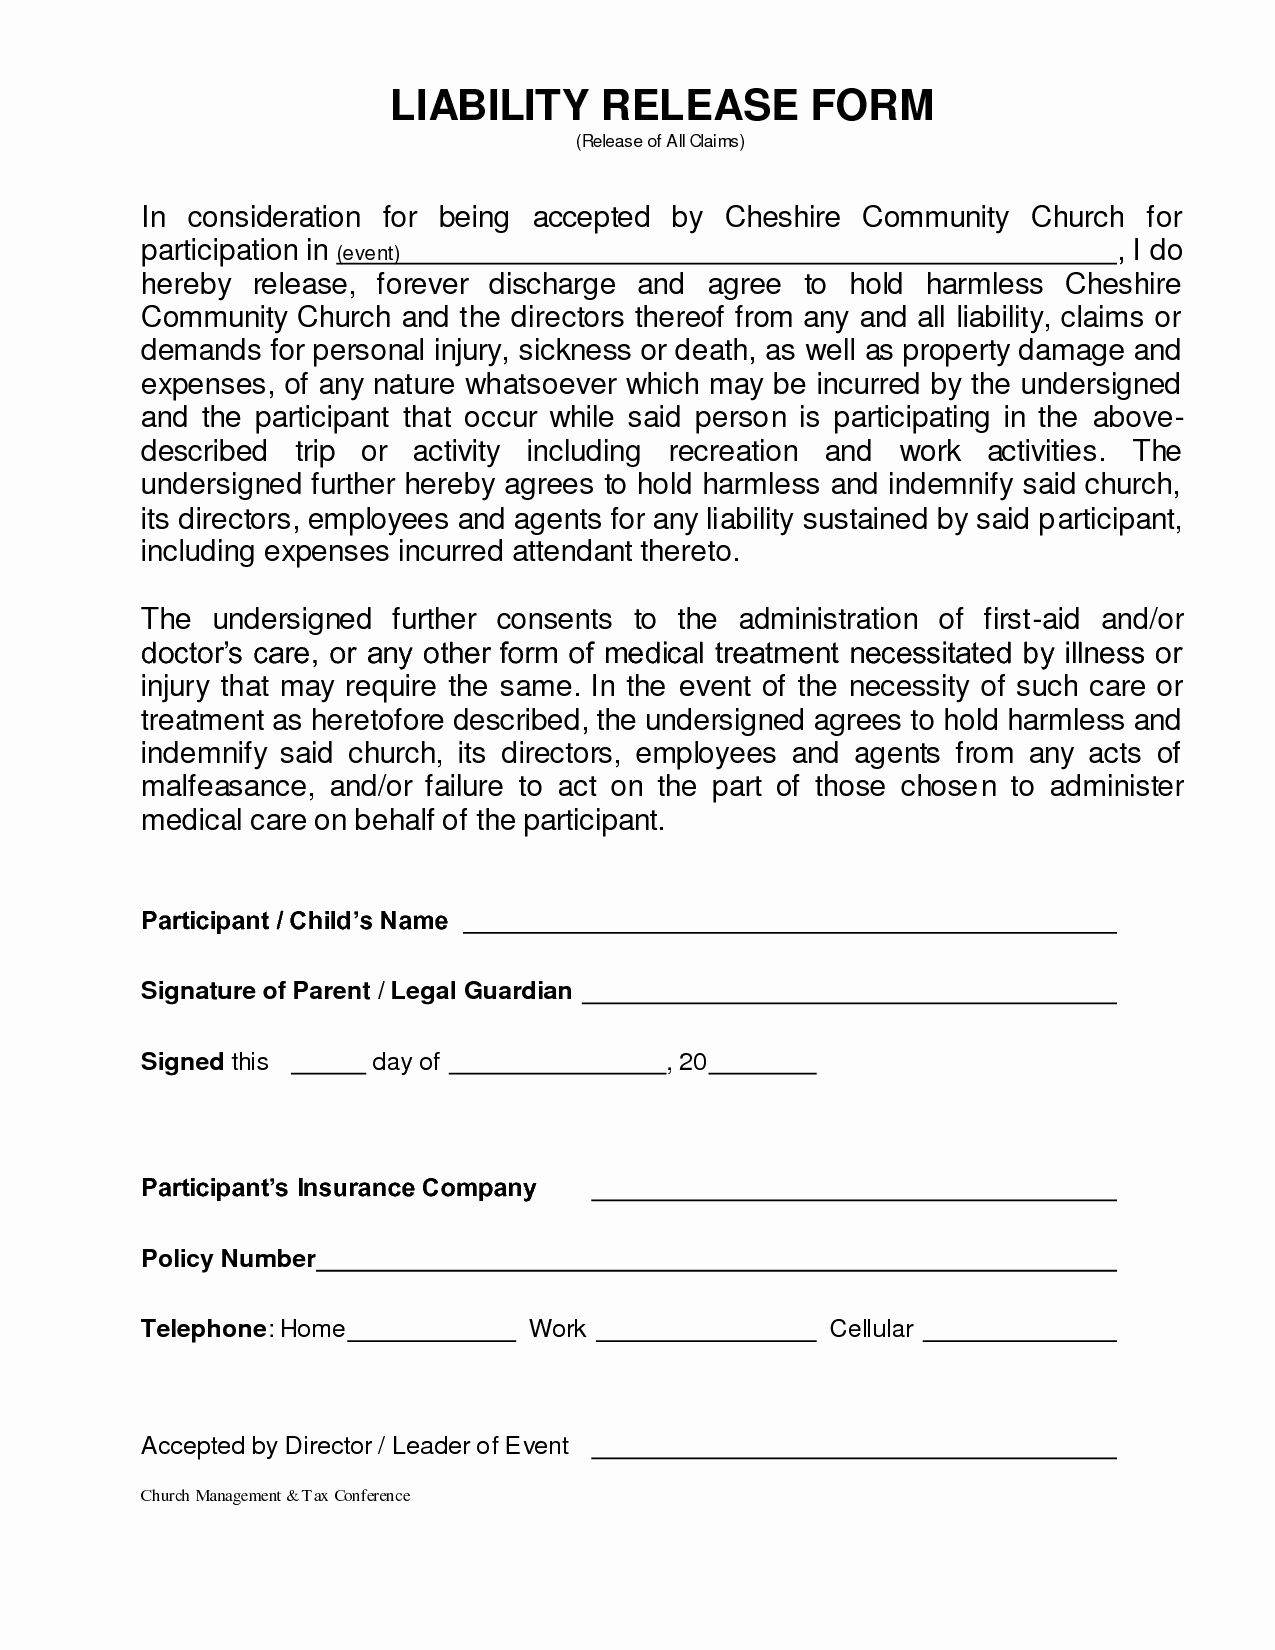 Personal Property Release Form Template Lovely 26 Of Personal Liability Release Form Template In 2020 Liability Waiver General Liability Templates